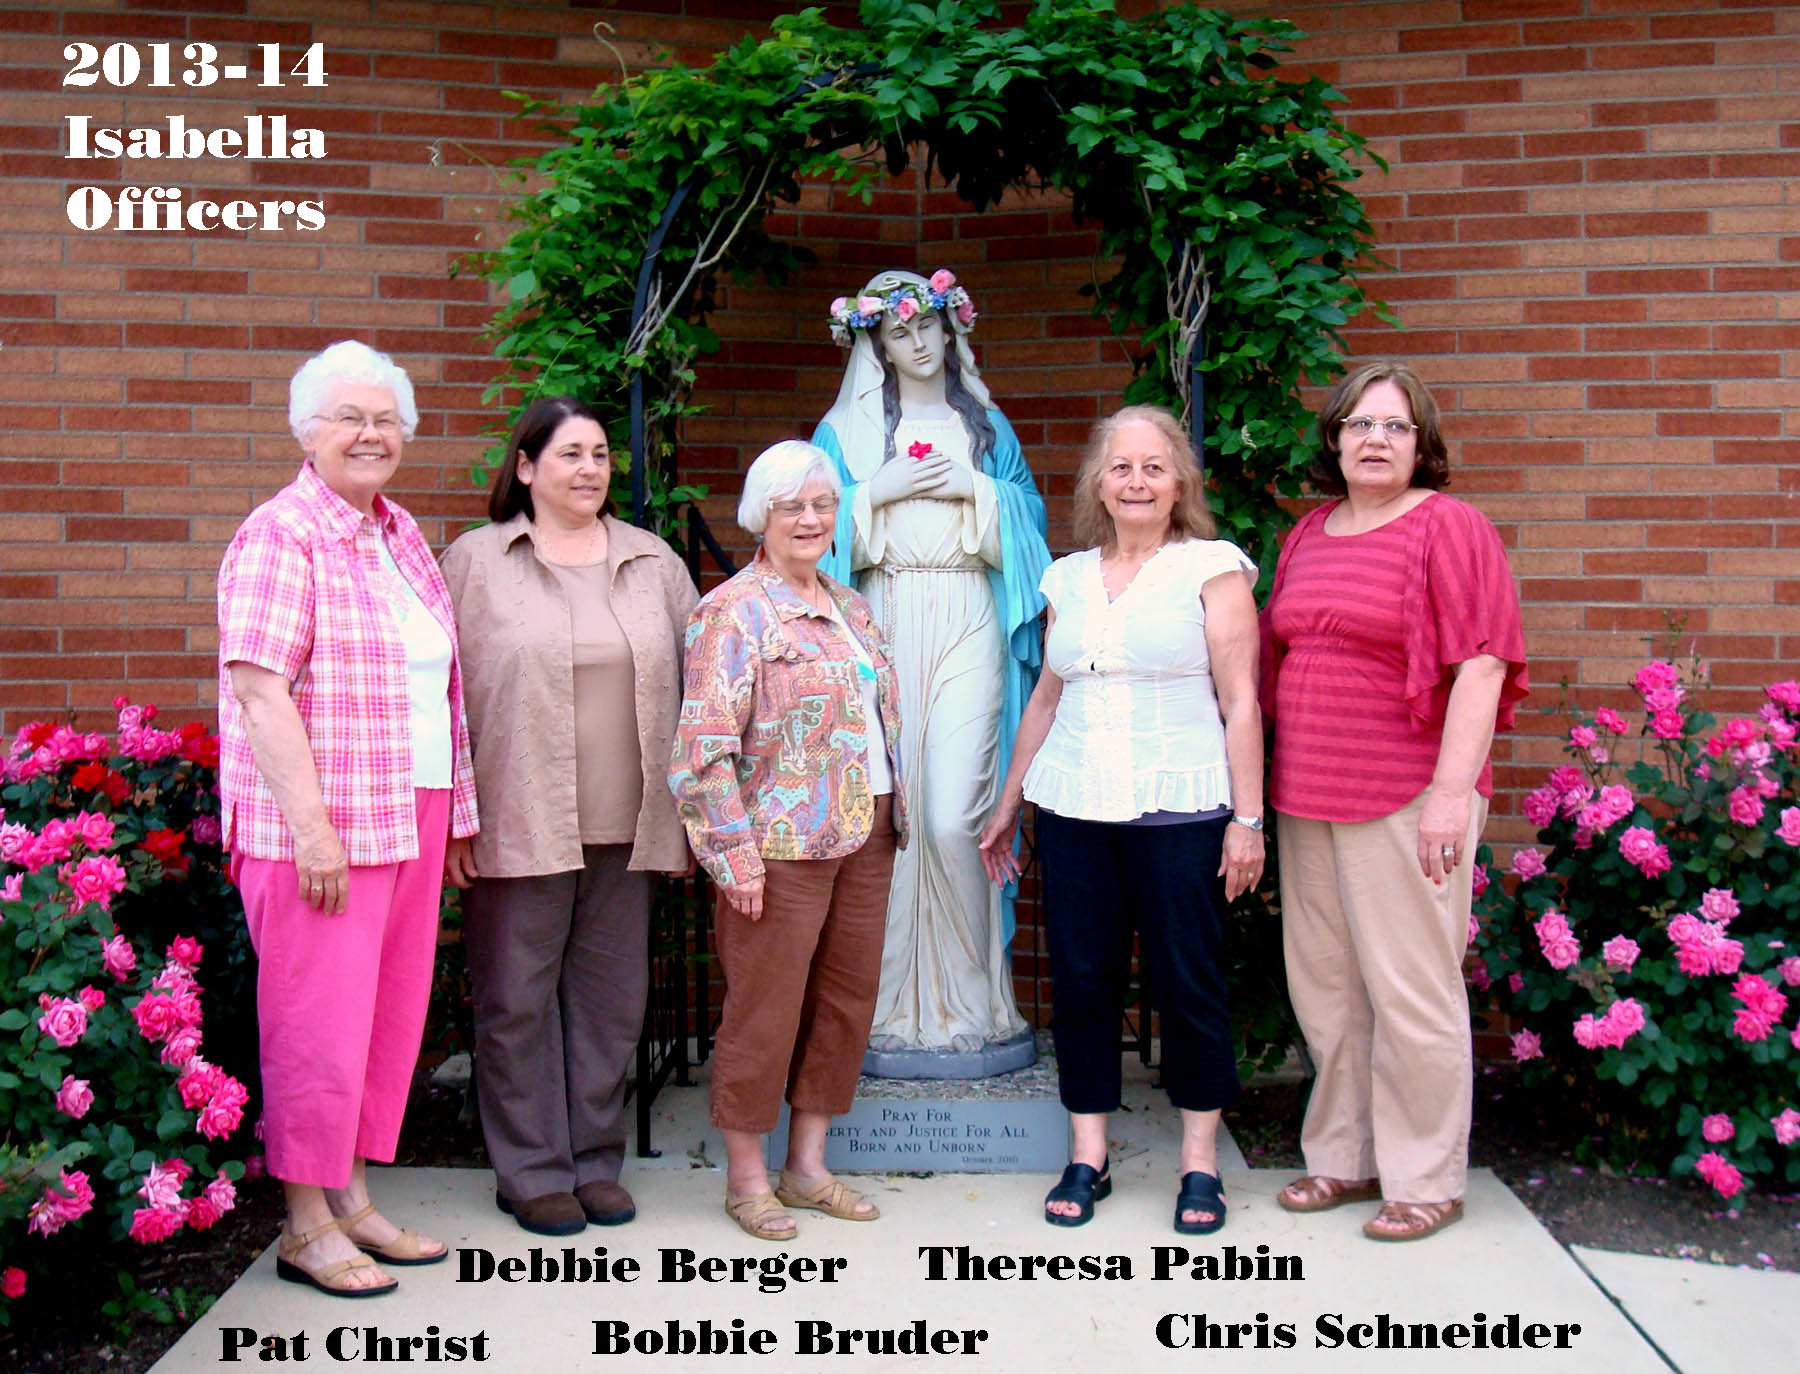 guild catholic single women All ladies of the parish are welcome to partake in the activities of the wg this group sponsors activities that encourage spiritual growth, as well as, promote friendship and cooperation among the members, support parish activities and provide financial help to the parish through its fundraising efforts.